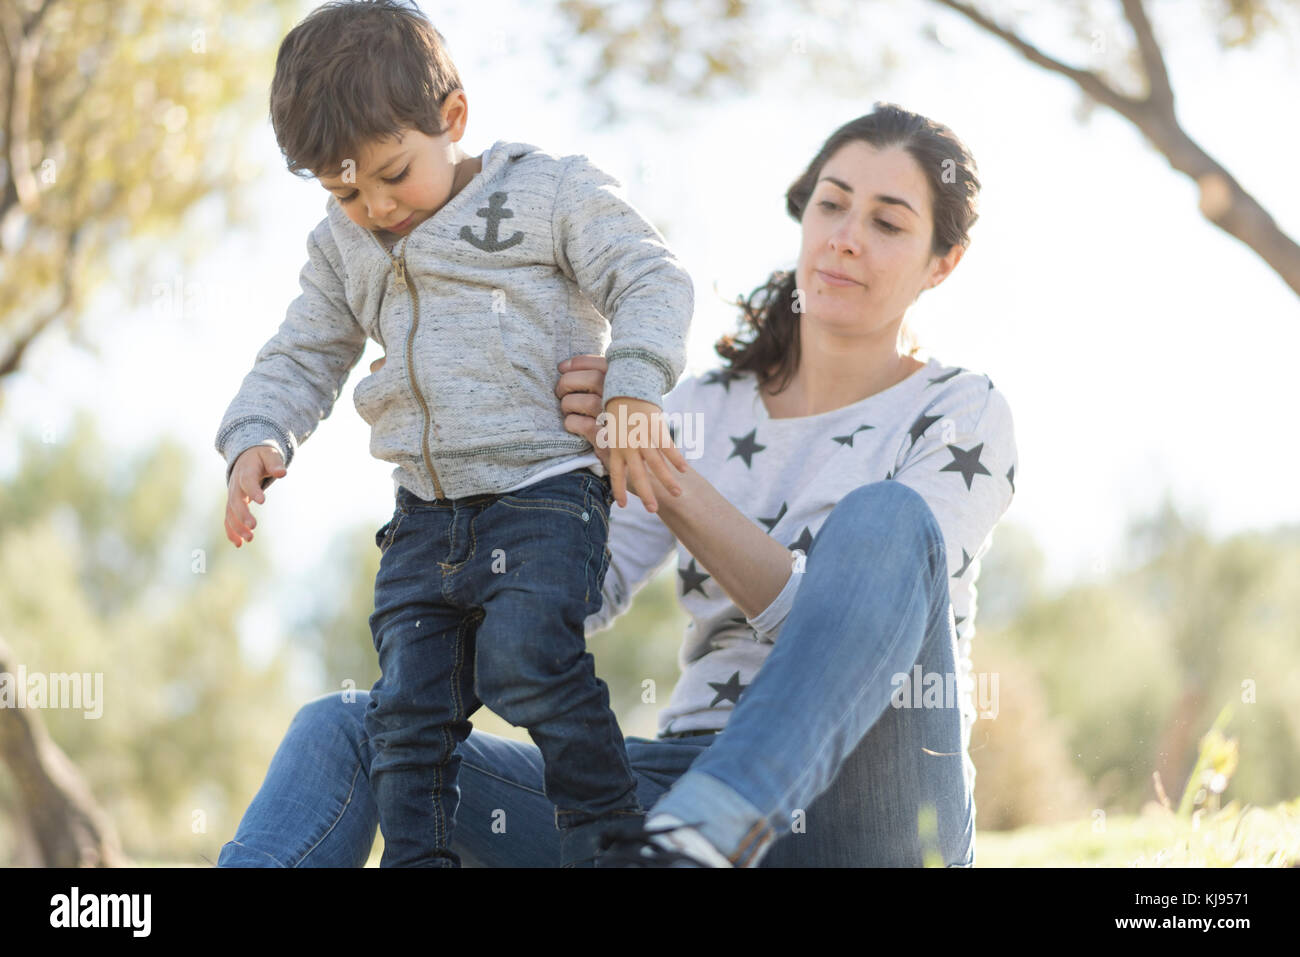 Mother and son in outdoors wood forest park. First steps learning - Stock Image